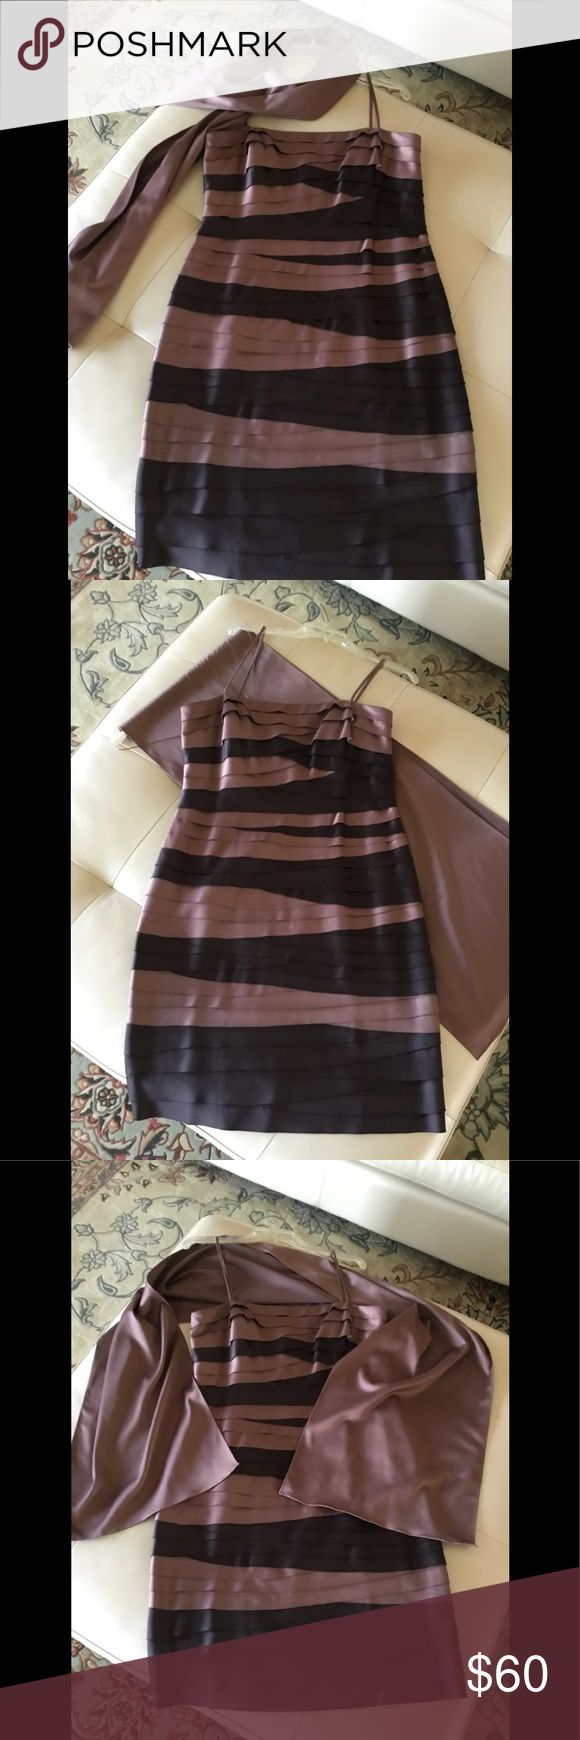 JS Cocktail Dres Lovely Mauve and Brown cocktail dress. Has lots of good times ahead. Extremely comfortable and compliments your shape. Has beautiful matching shawl. JS Collections Dresses Midi